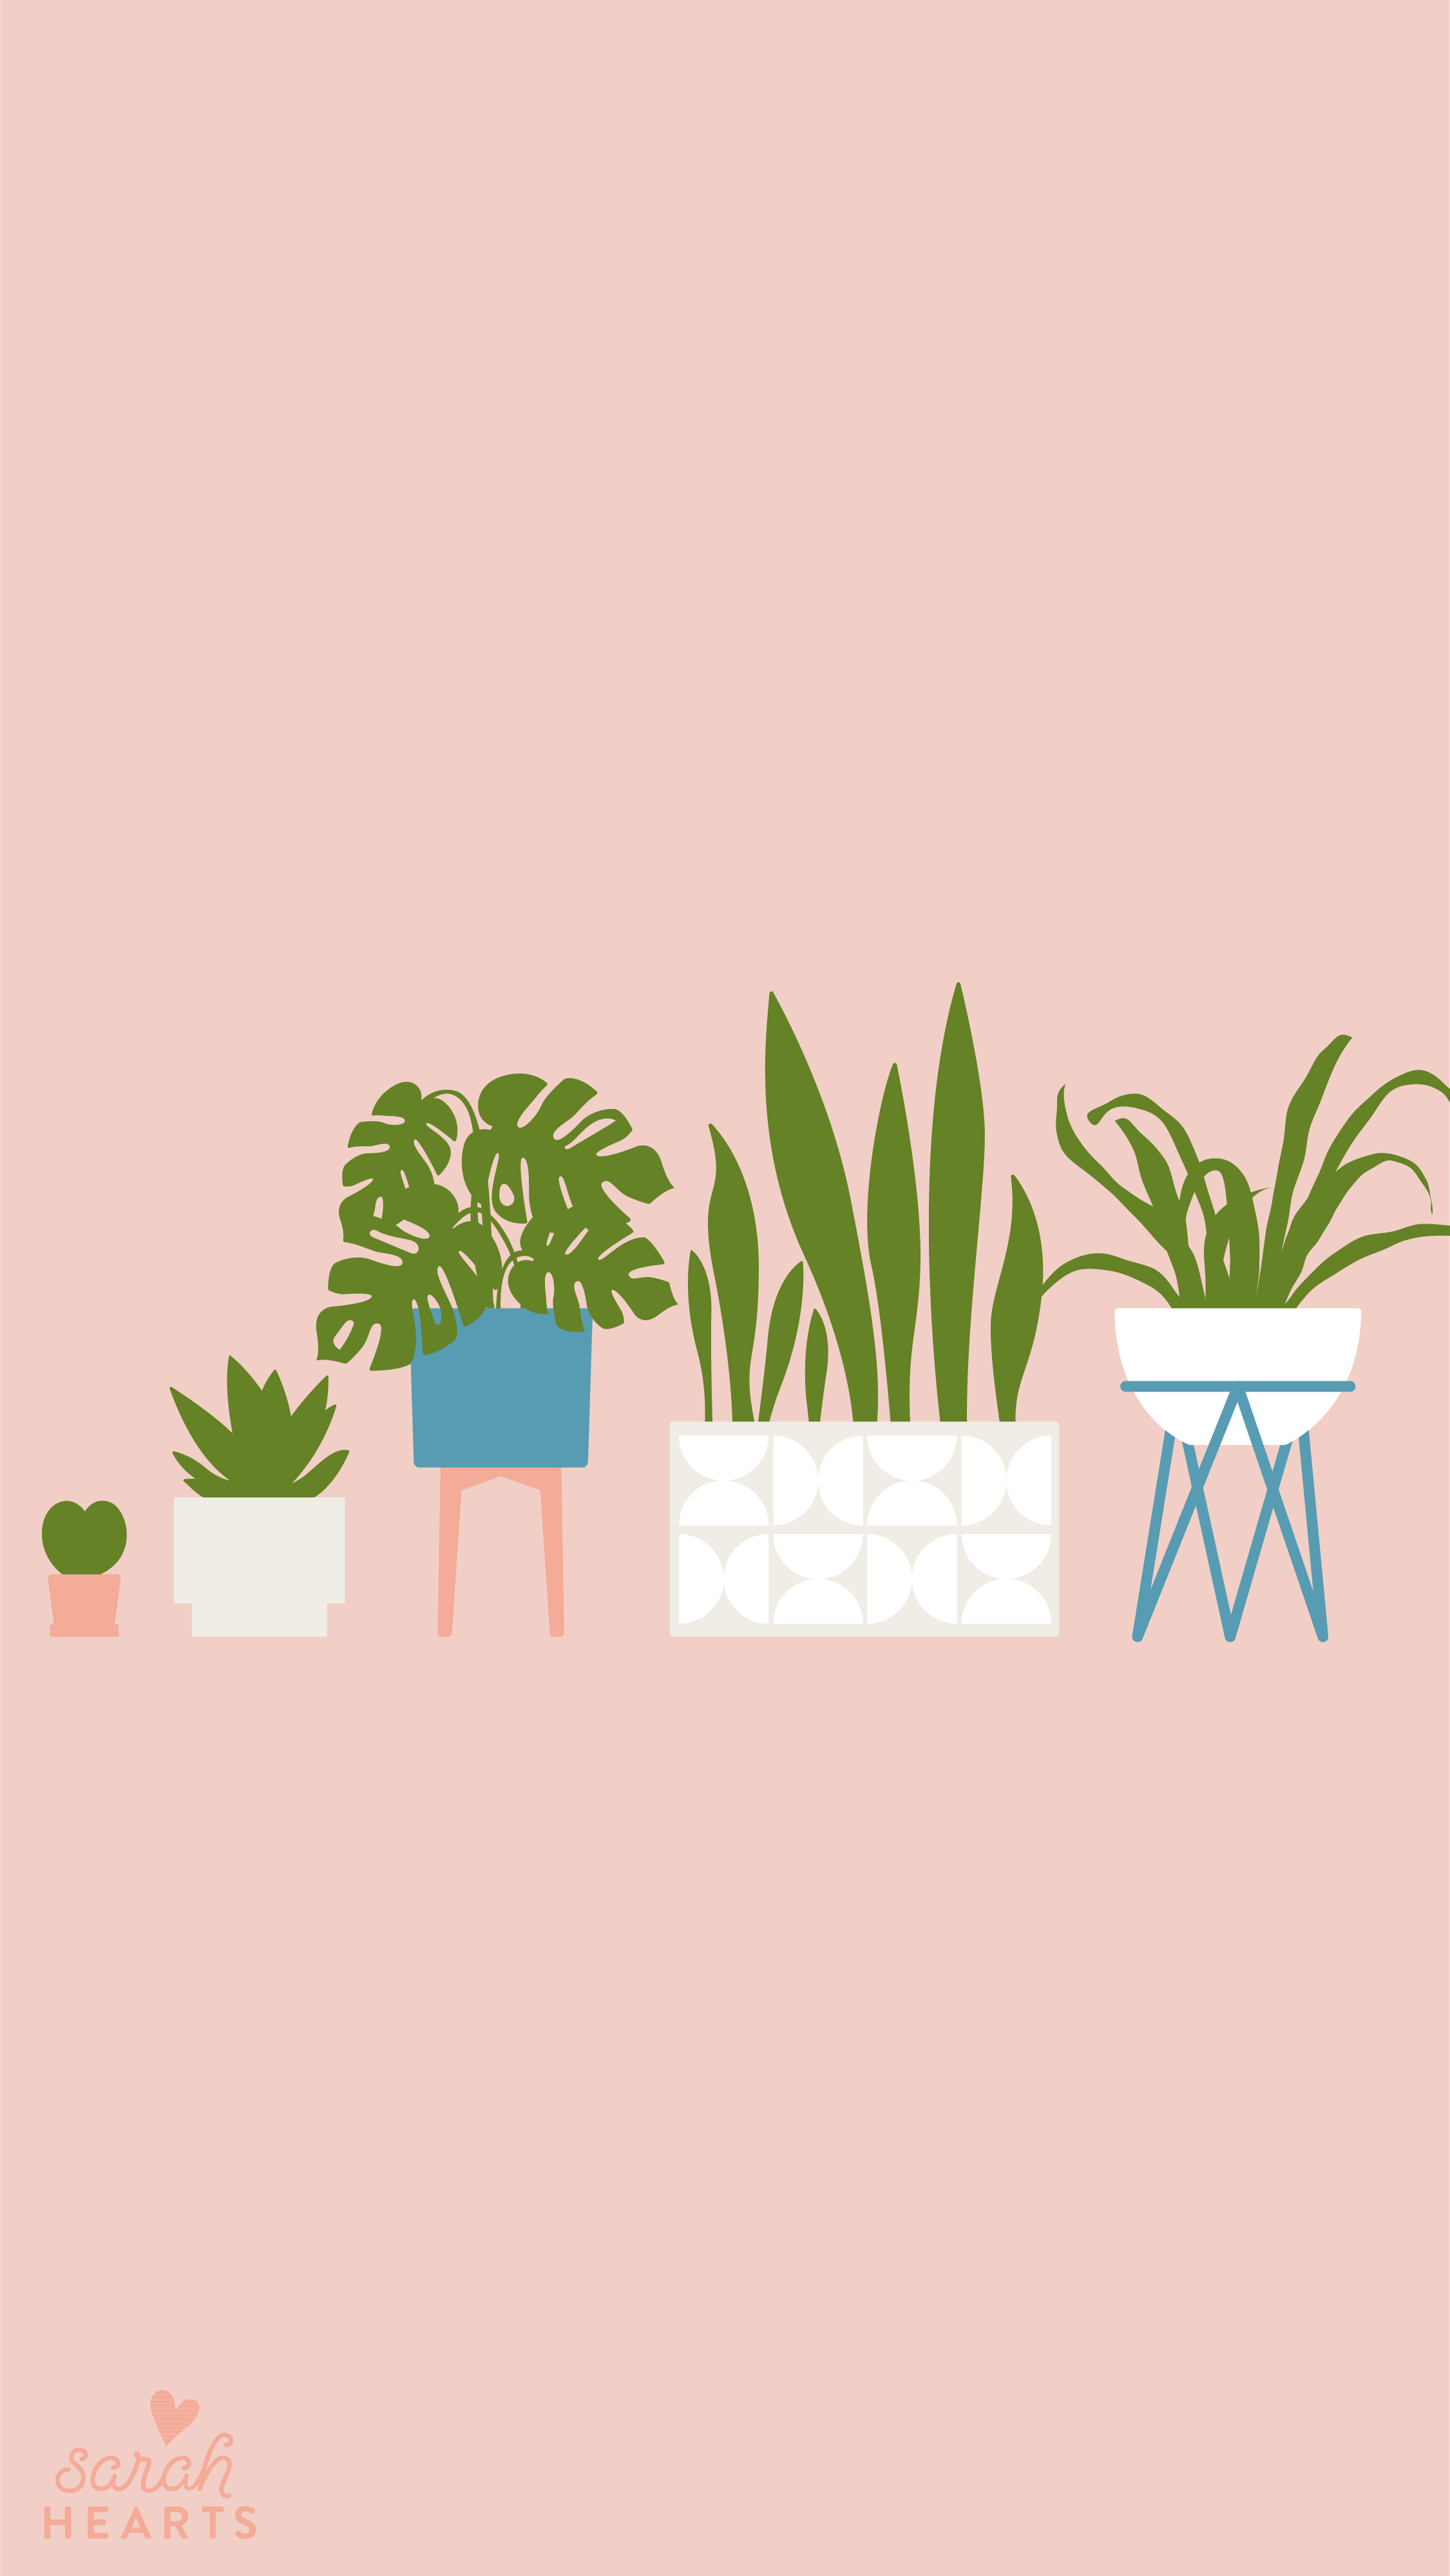 House Plant August 2019 Calendar Wallpaper Sarah Hearts